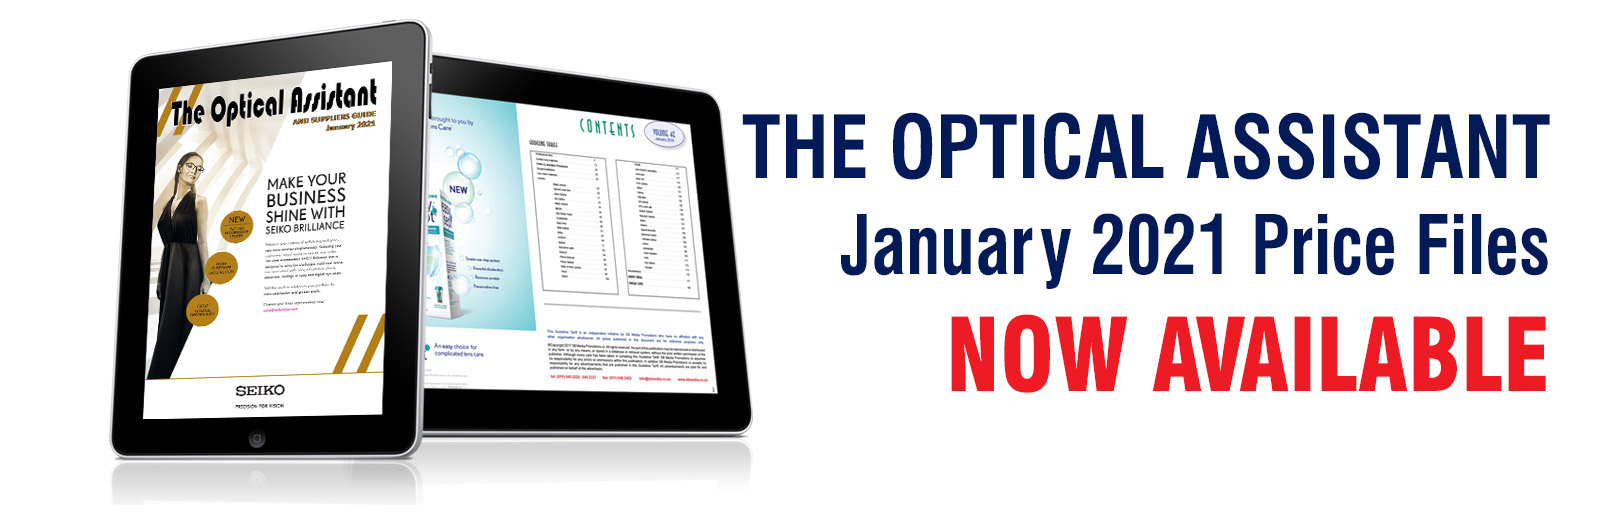 The Optical Assistant, January 2021 Price Files